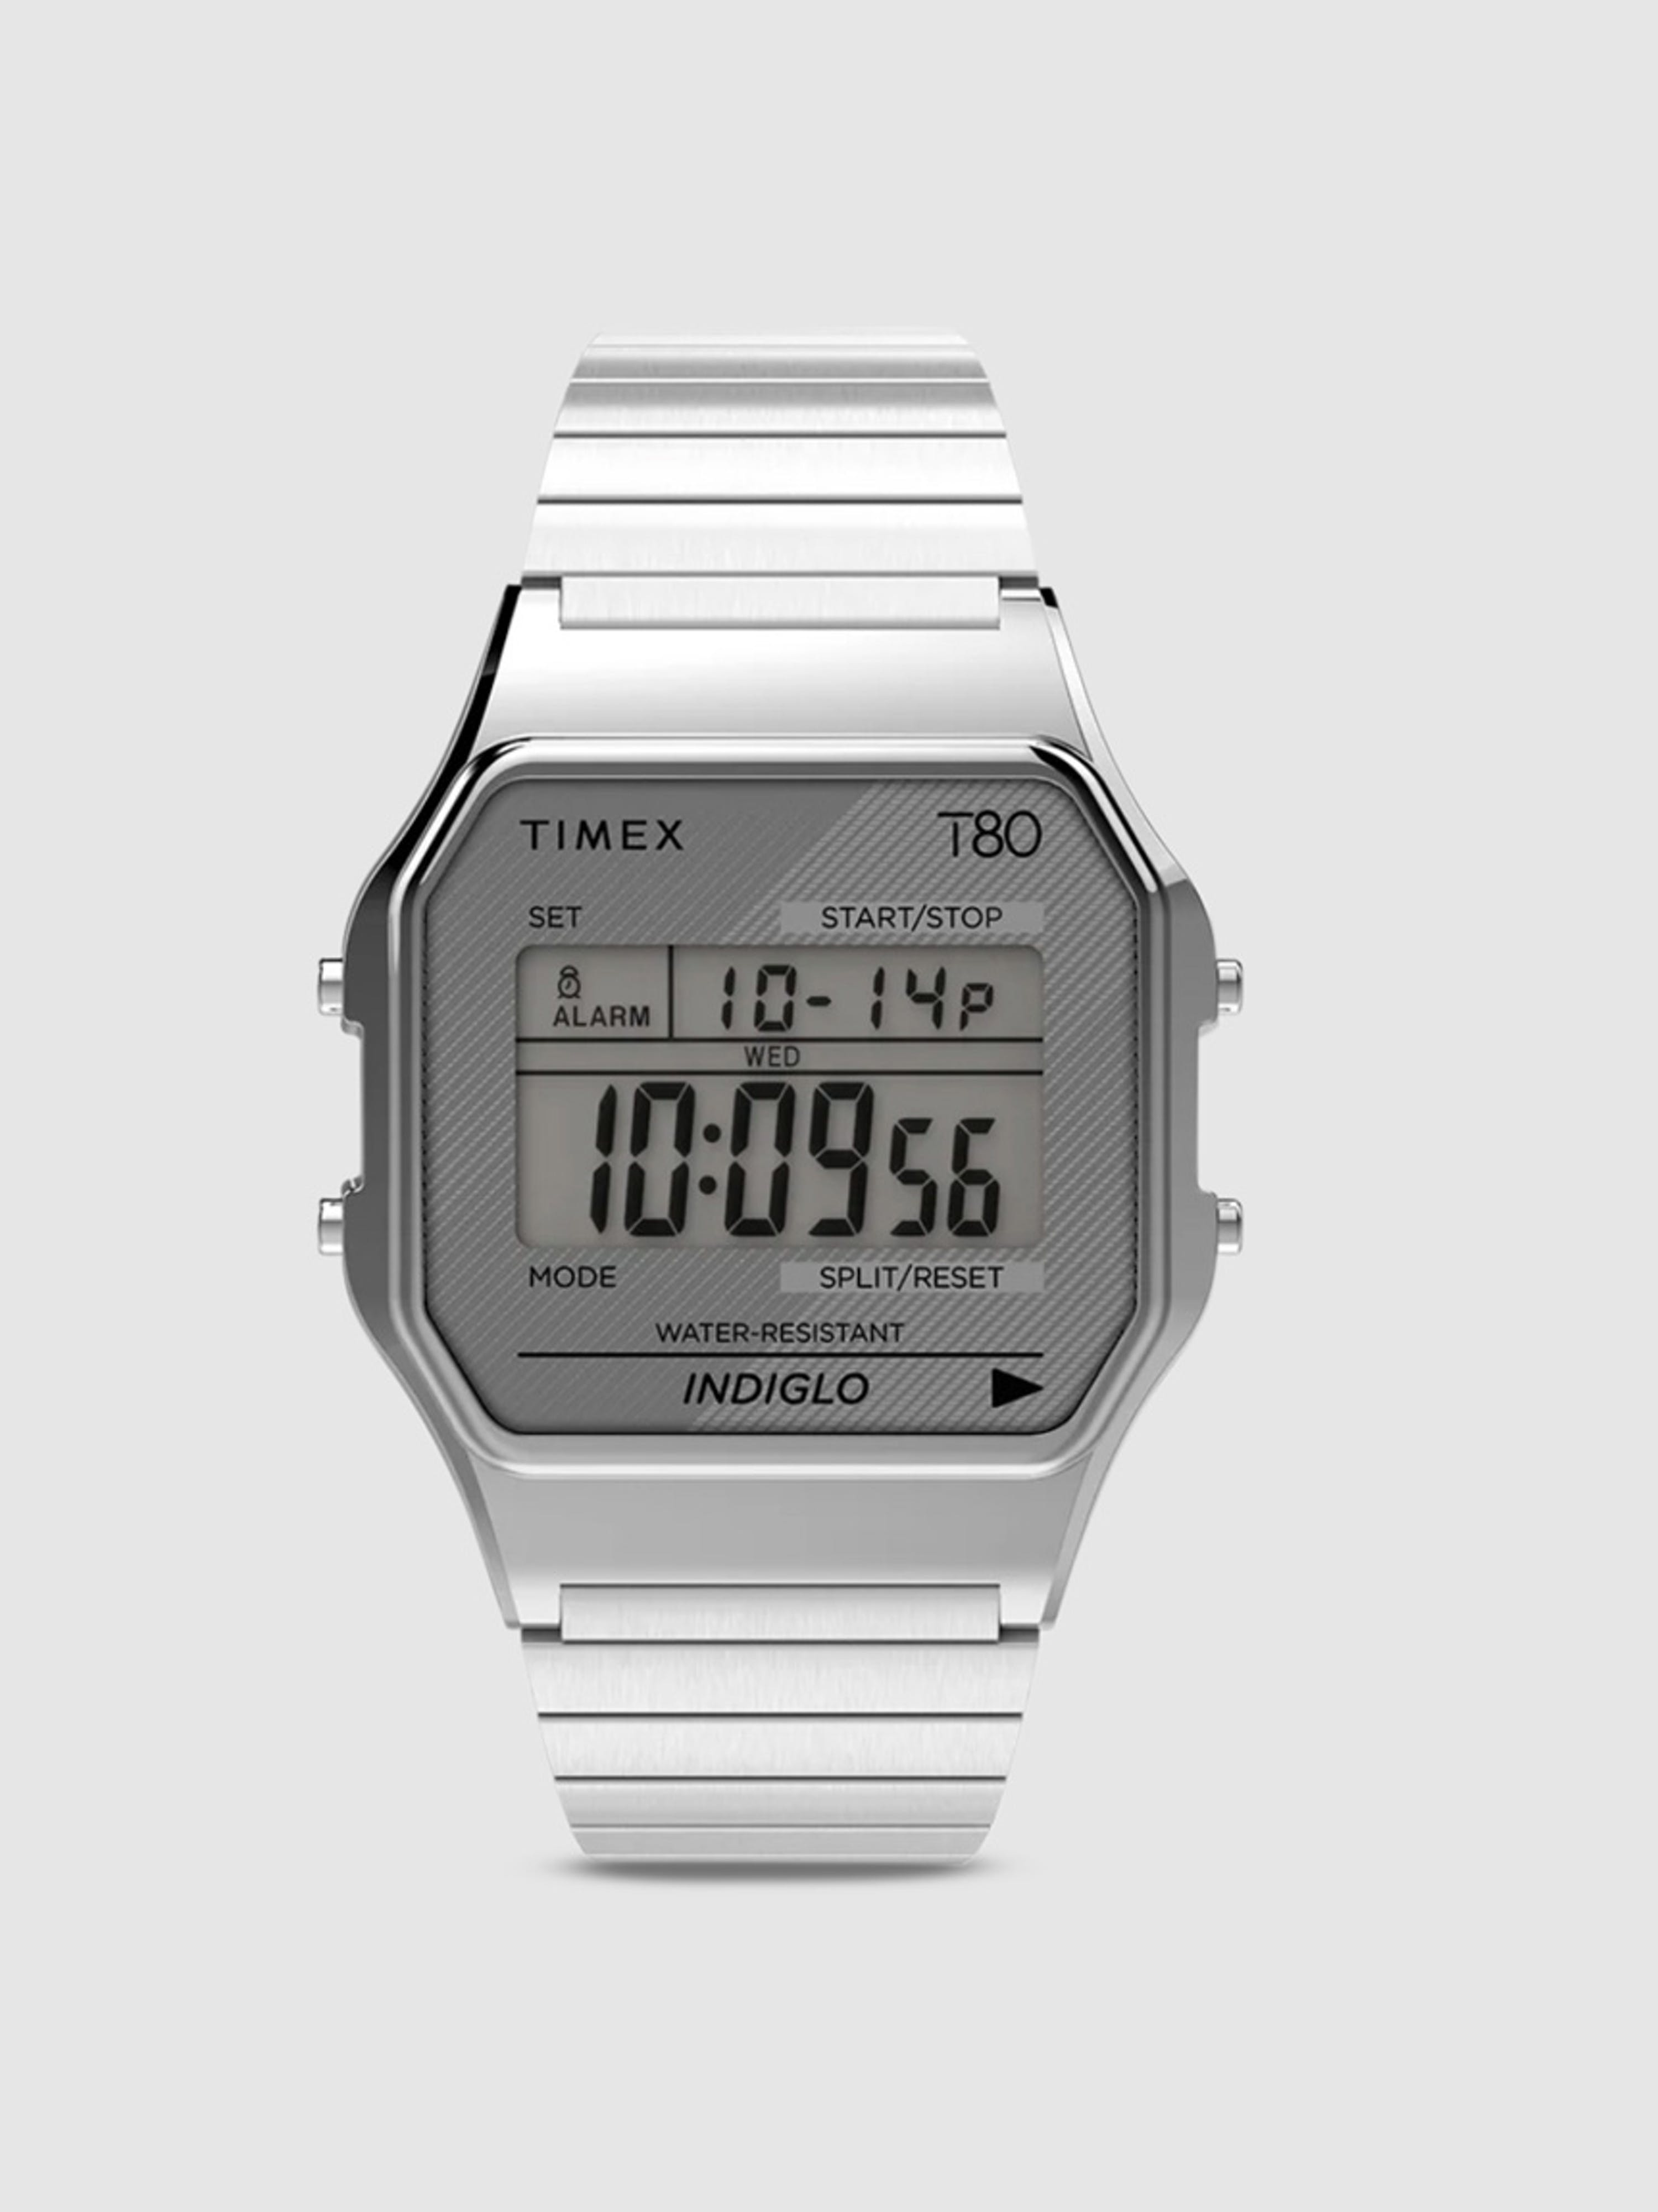 TIMEX TIMEX T80 34MM STAINLESS STEEL WATCH